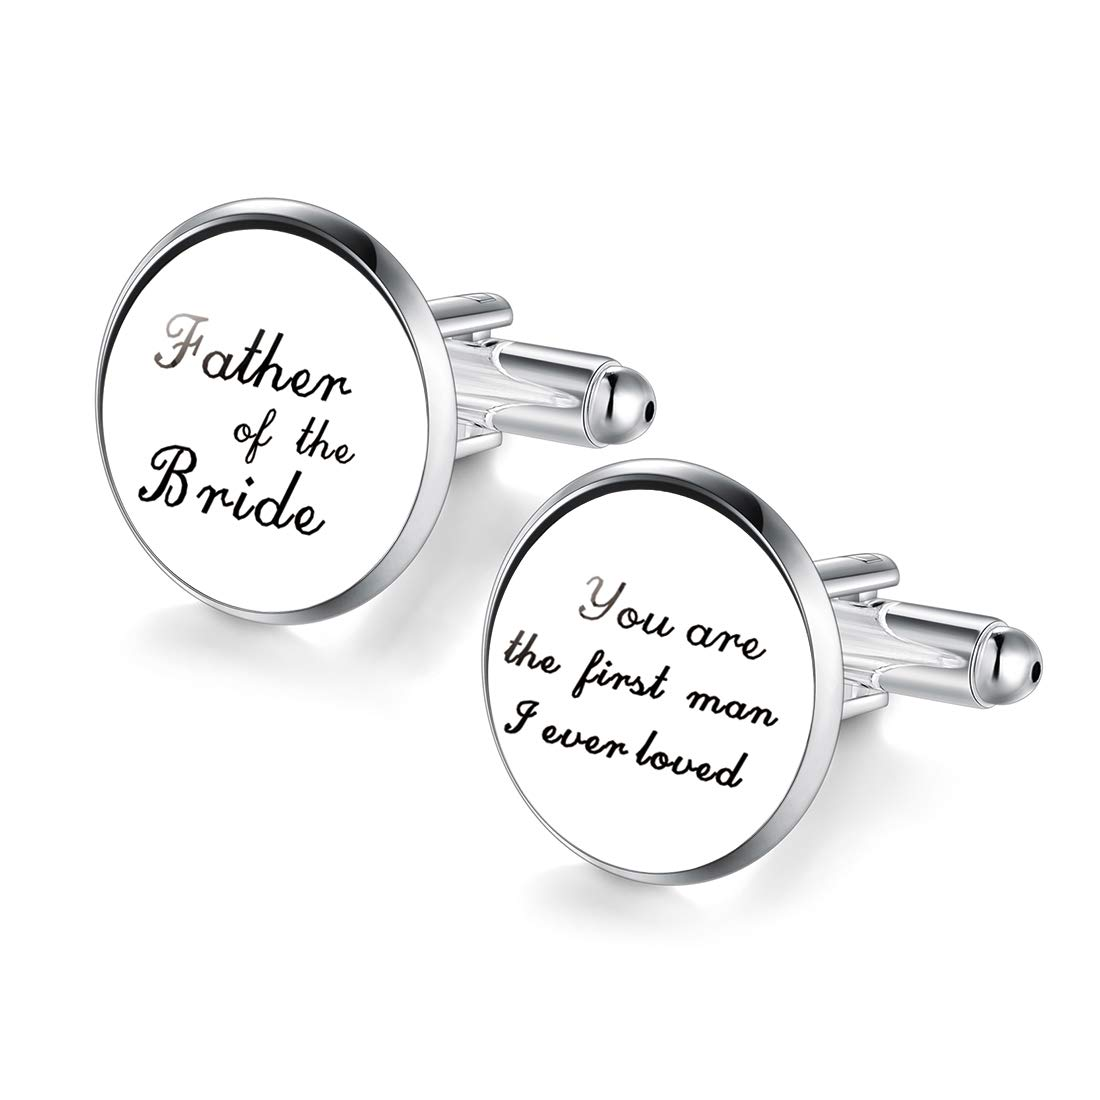 Jiayiqi Cuff Links for Father of The Bride You are The First Man i Ever Loved